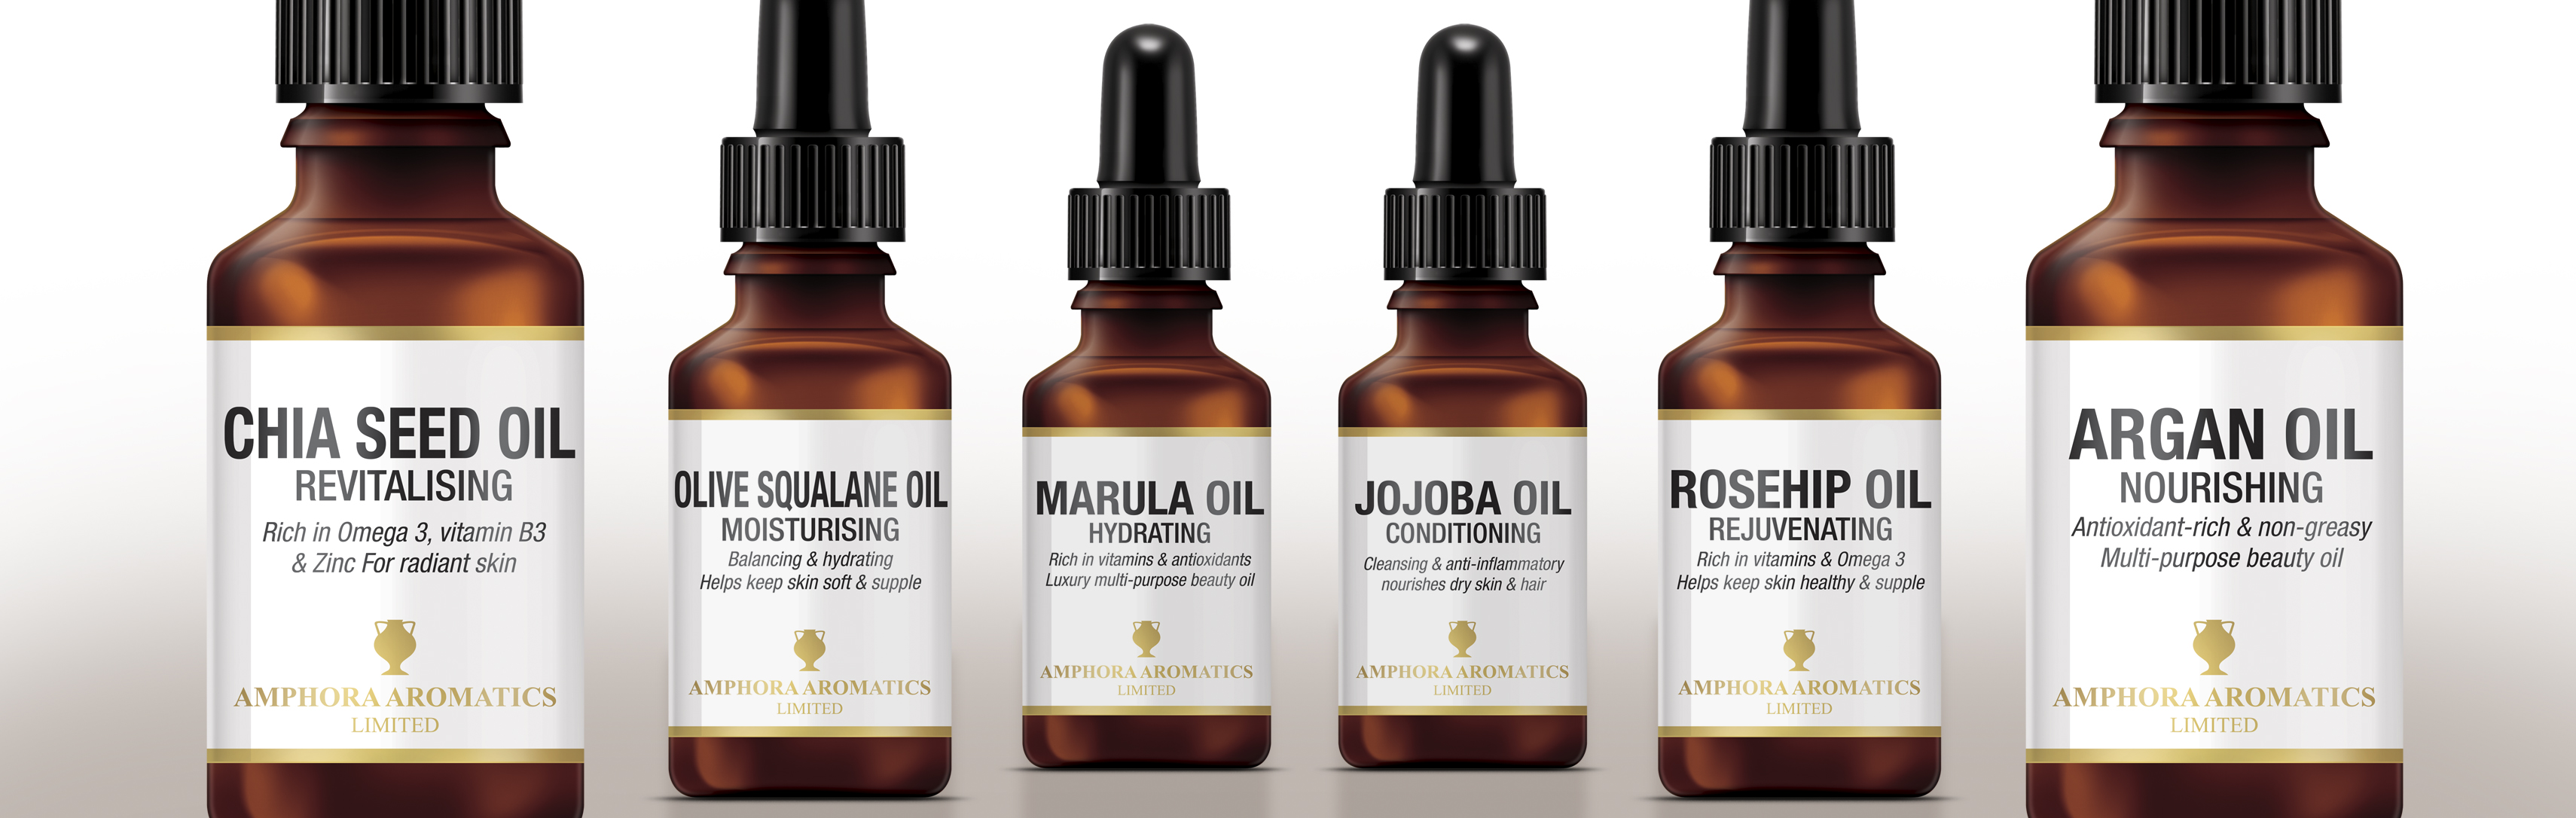 Multi-purpose Beauty Oils